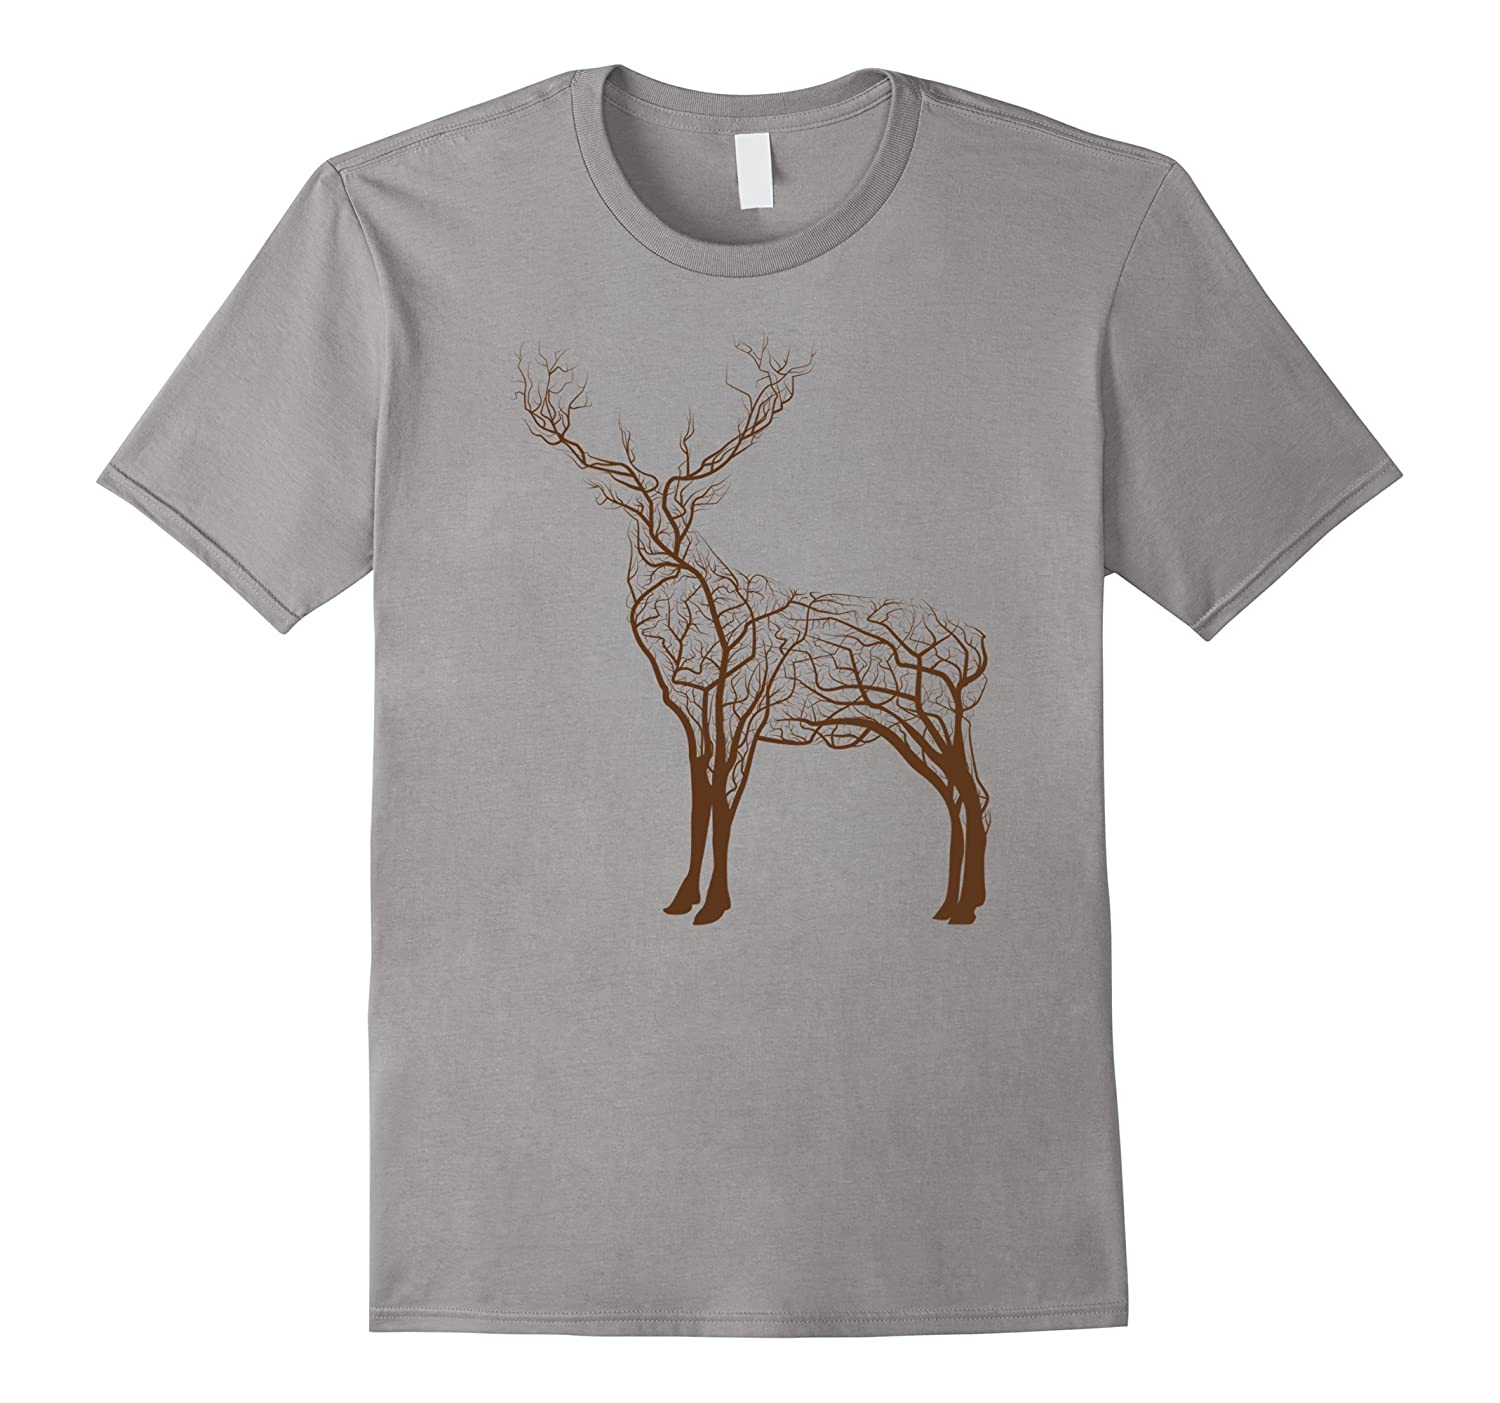 Unisex Deer Hunting T Shirt Outdoor Nature Tee T Shirt Gift-ANZ